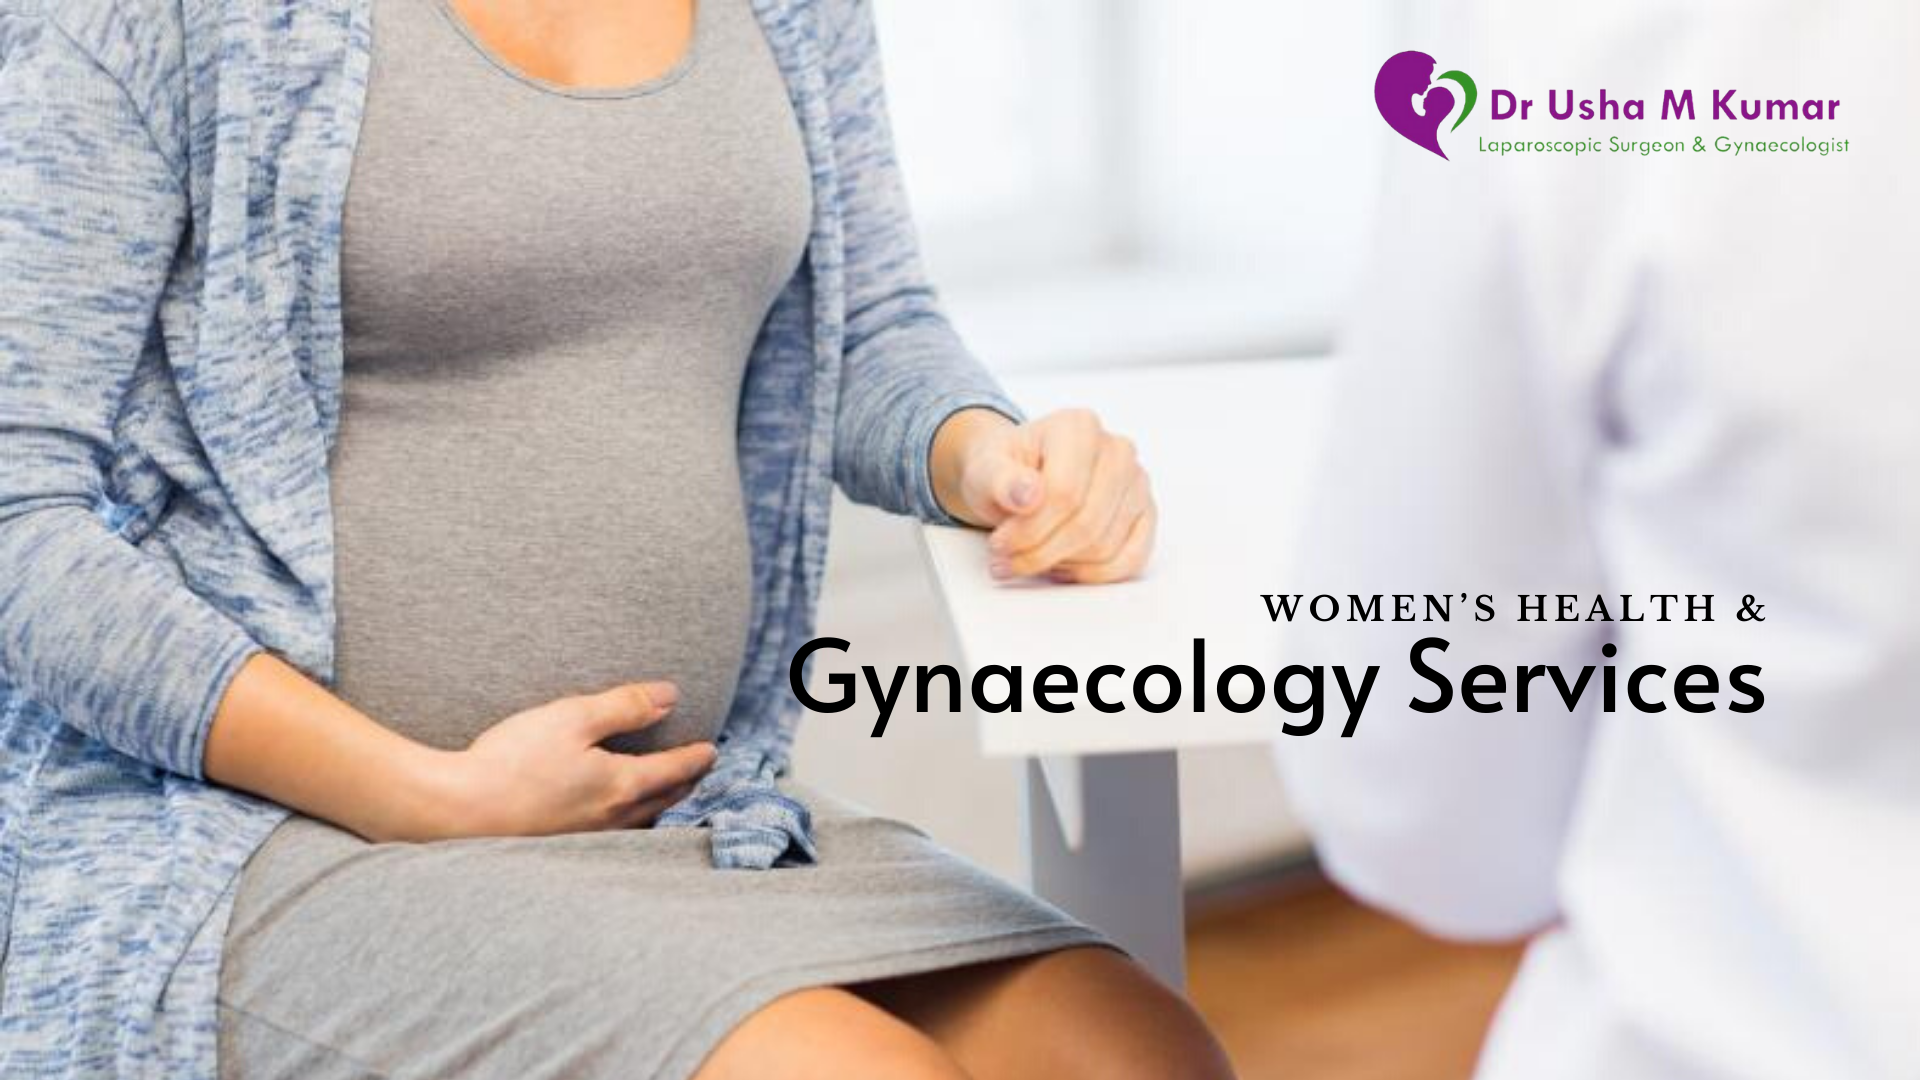 Women's Health & Gynaecology Services